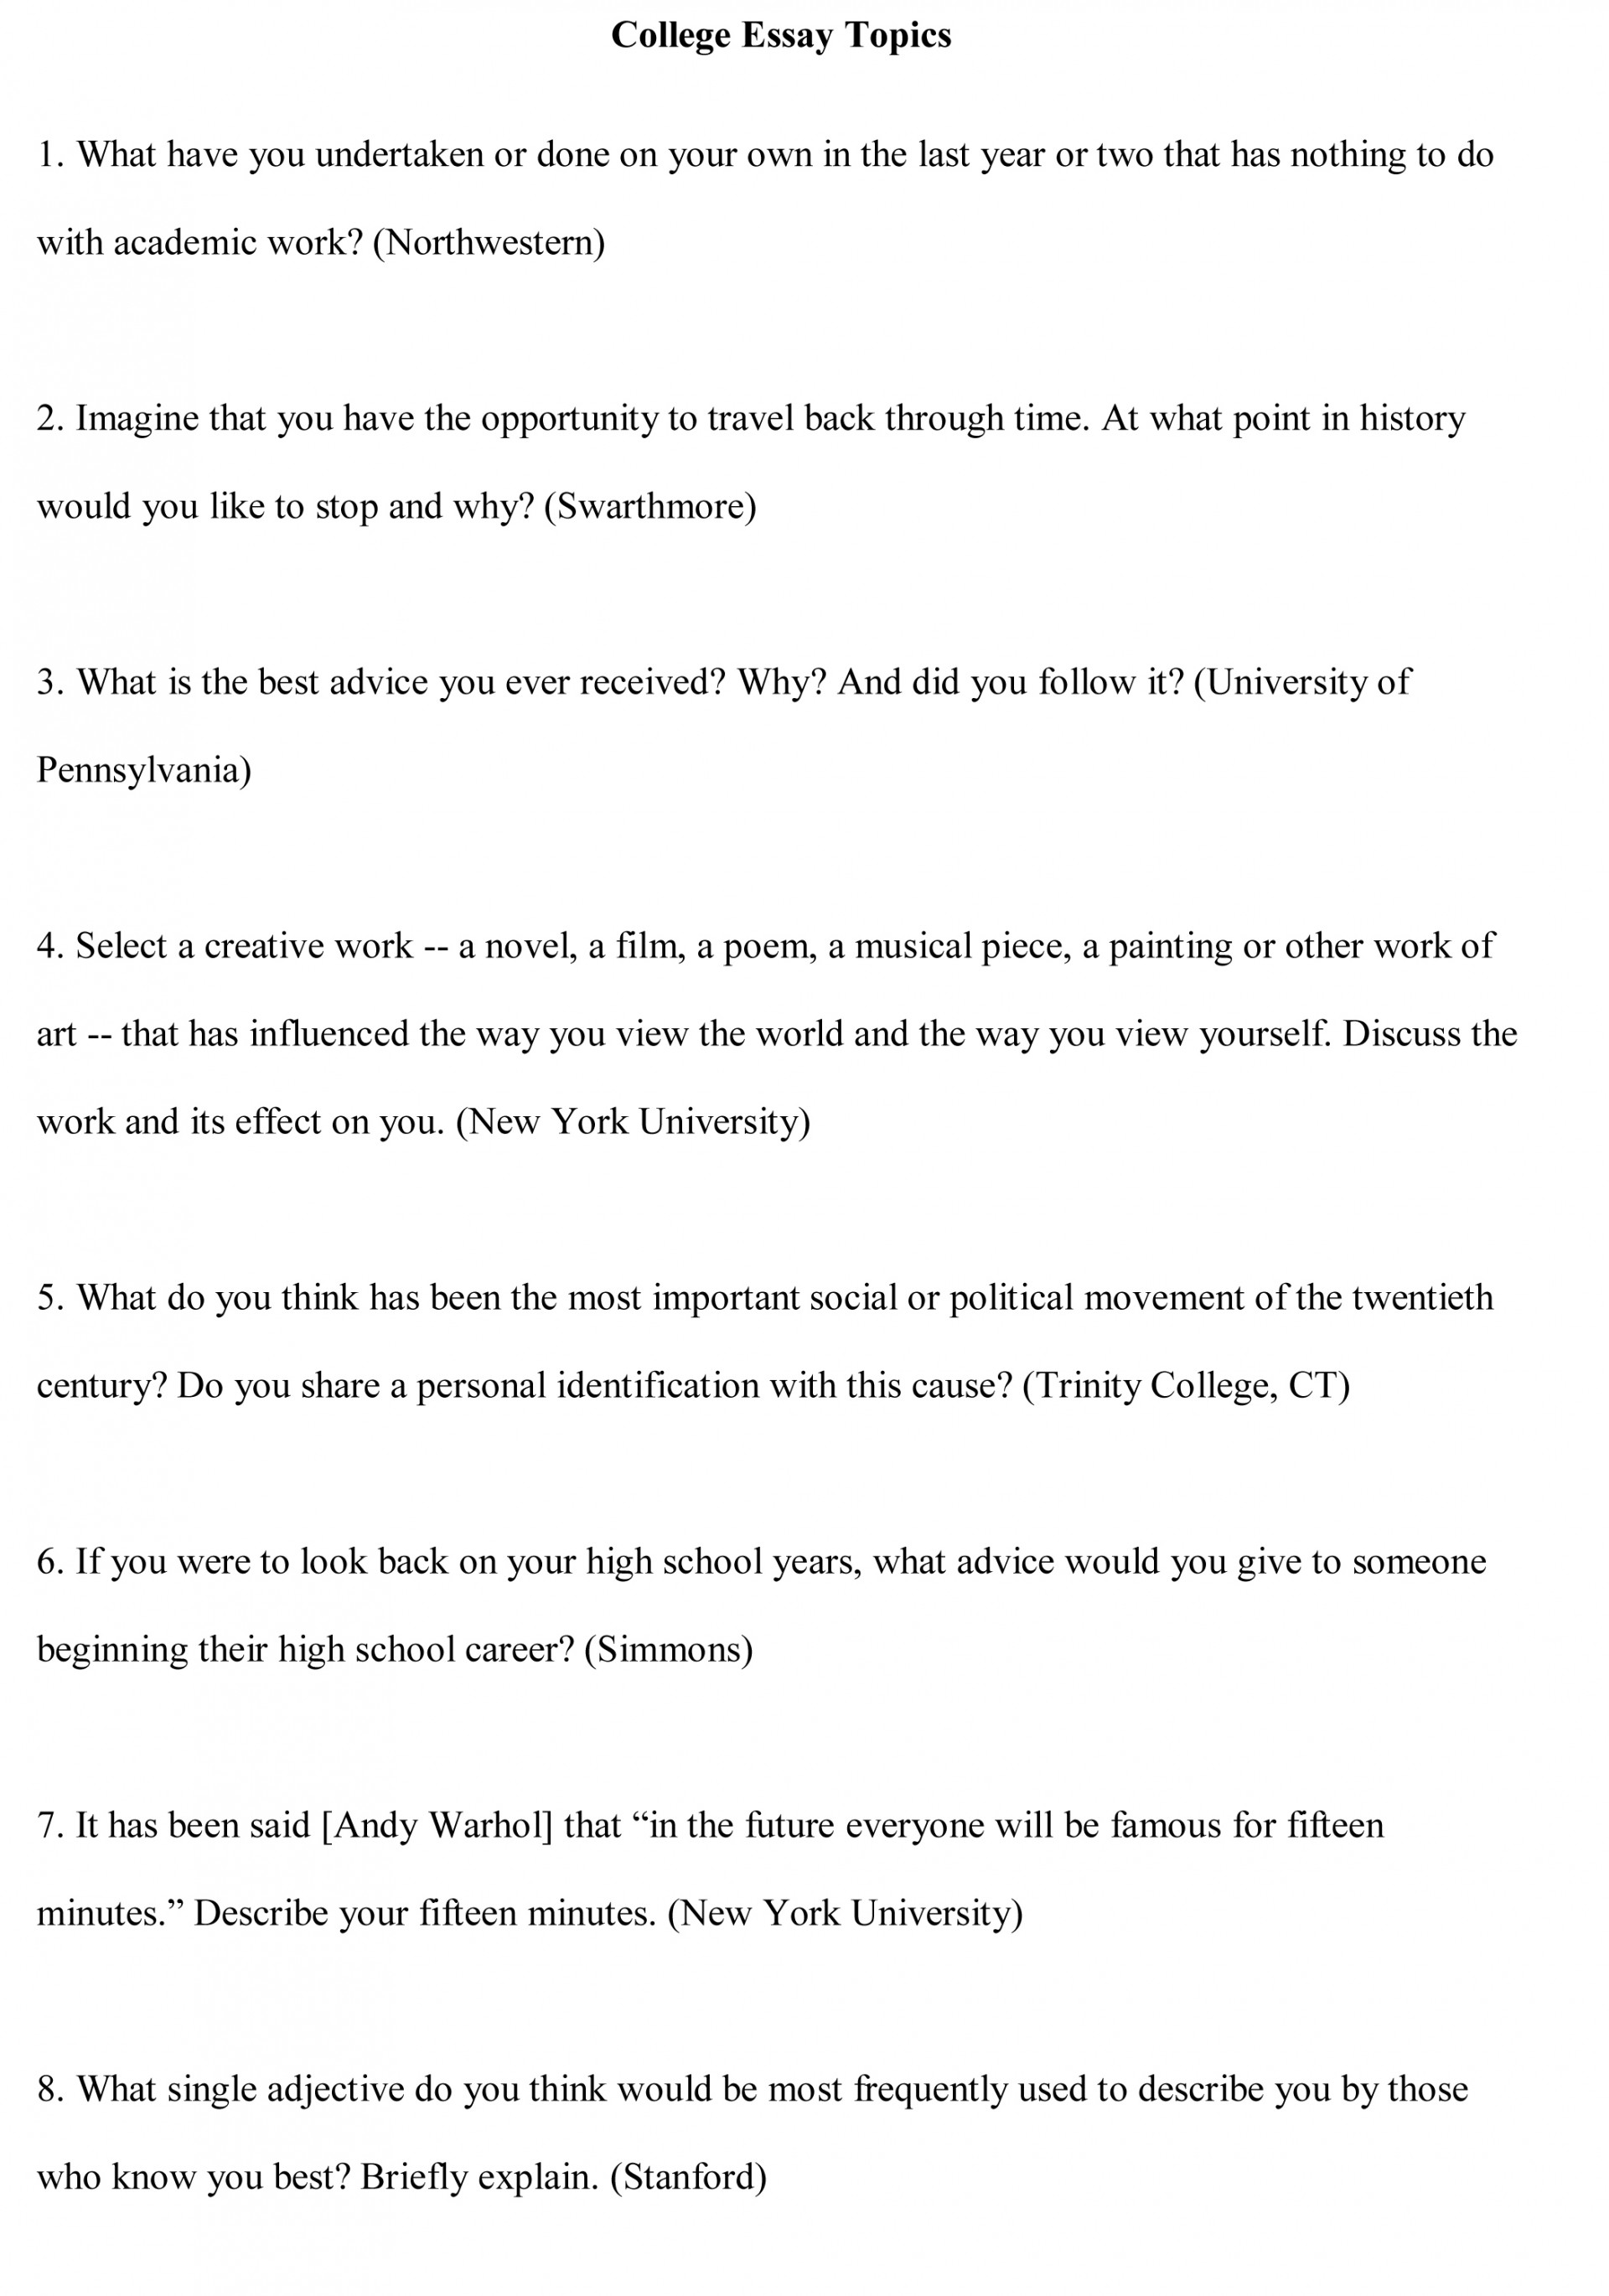 014 Essay Topics College Free Sample1 Archaicawful For 8th Grade List Class 10 Questions Macbeth Act 2 1920